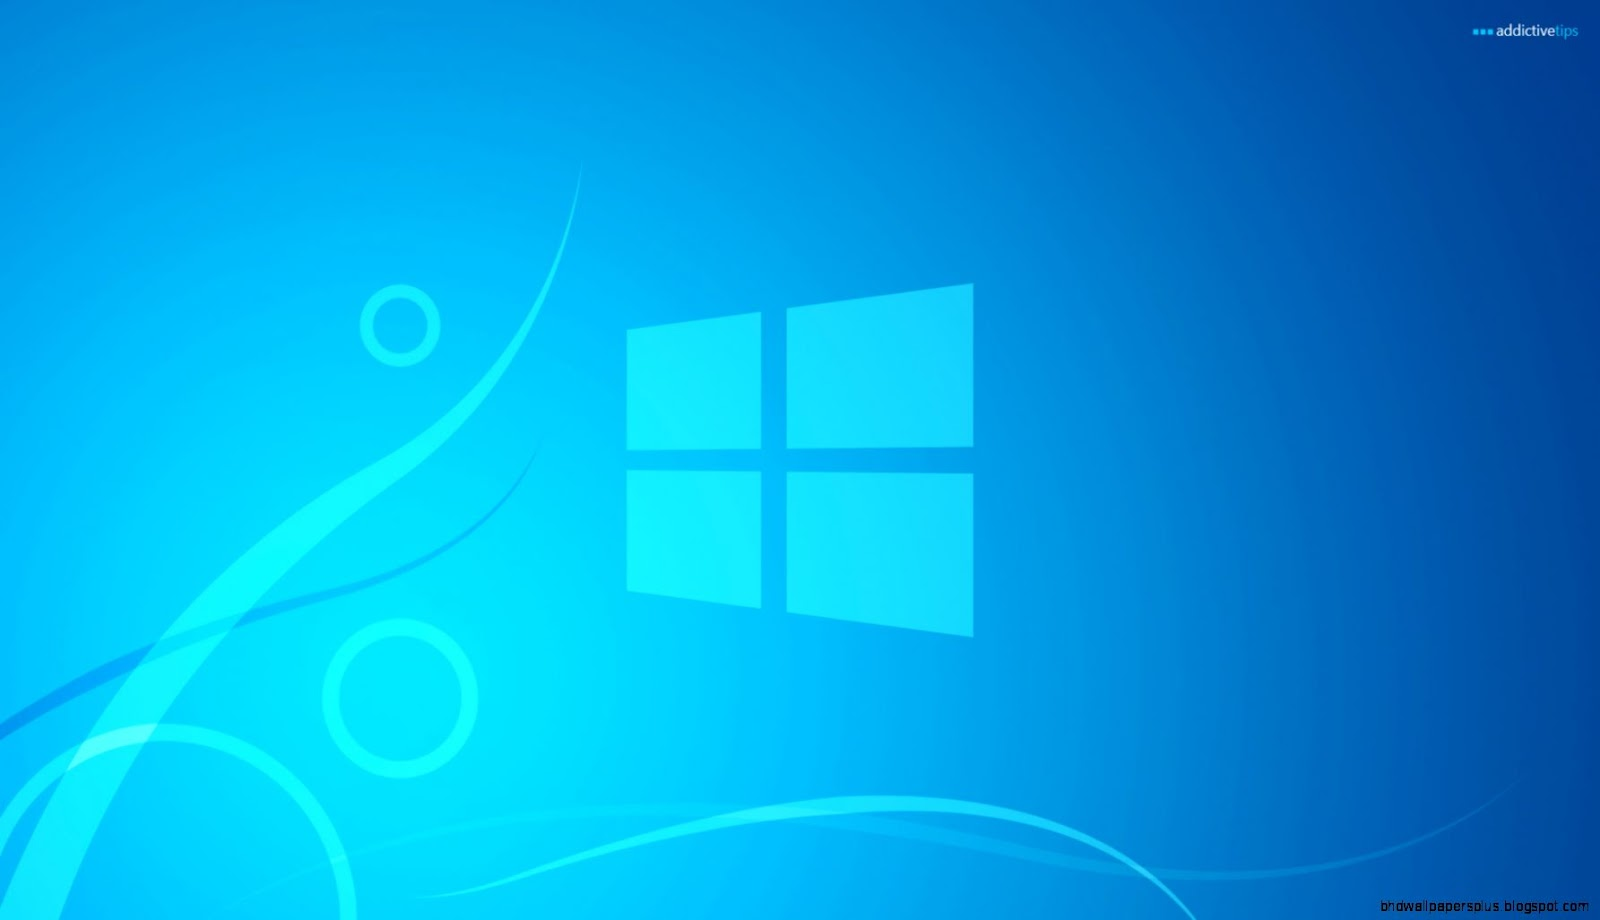 Windows 81 Wallpaper 1080P